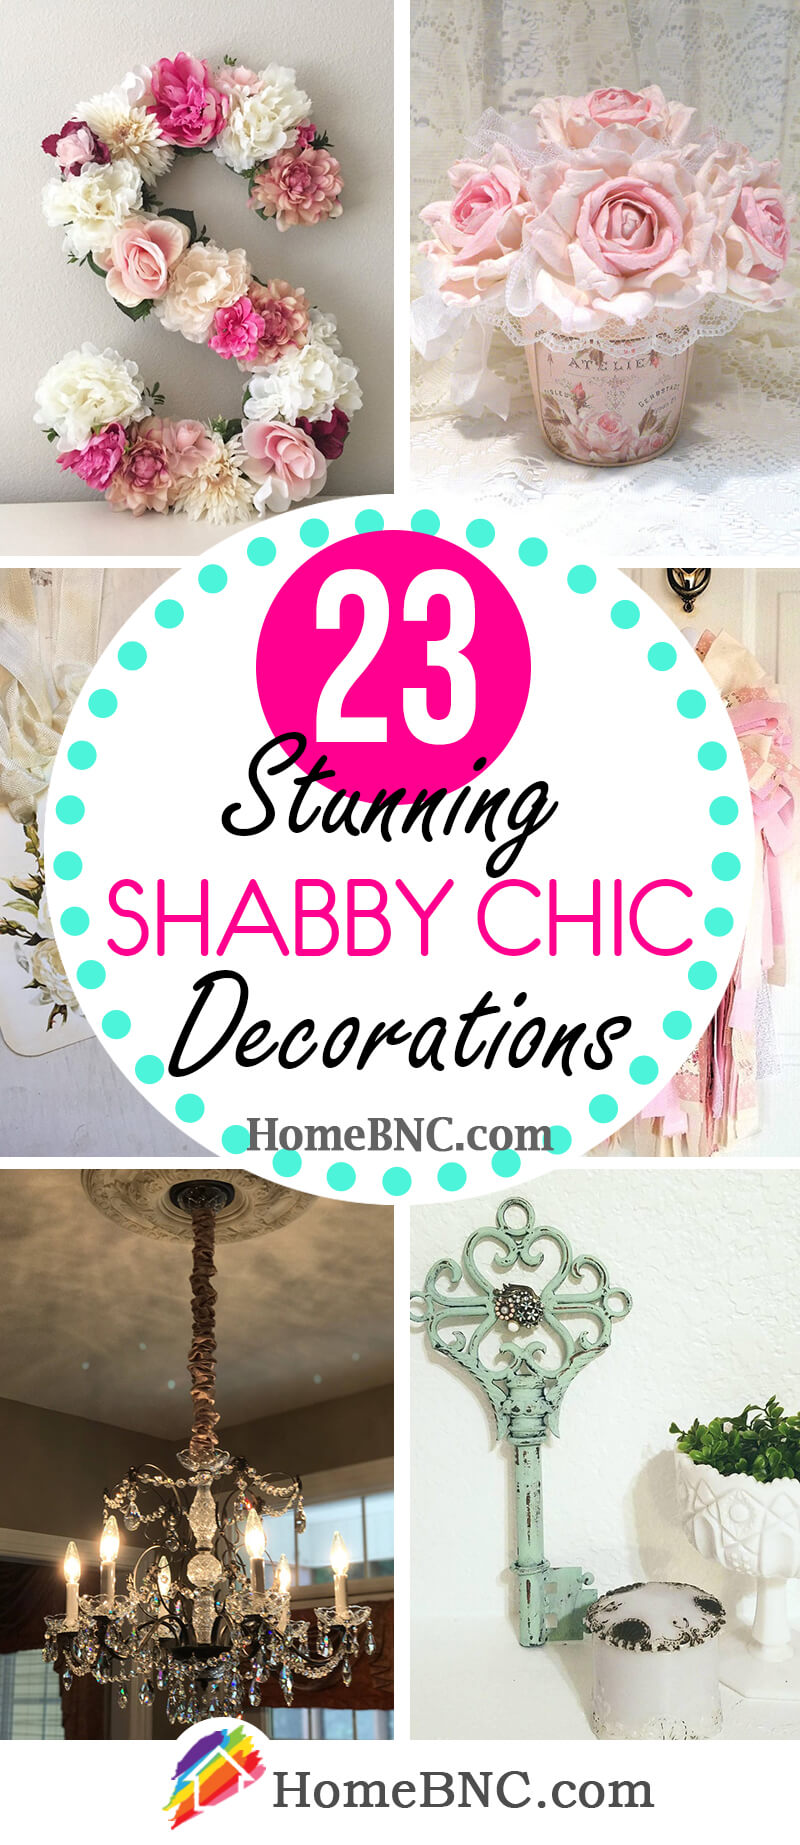 Best Shabby Chic Decor Ideas and Design